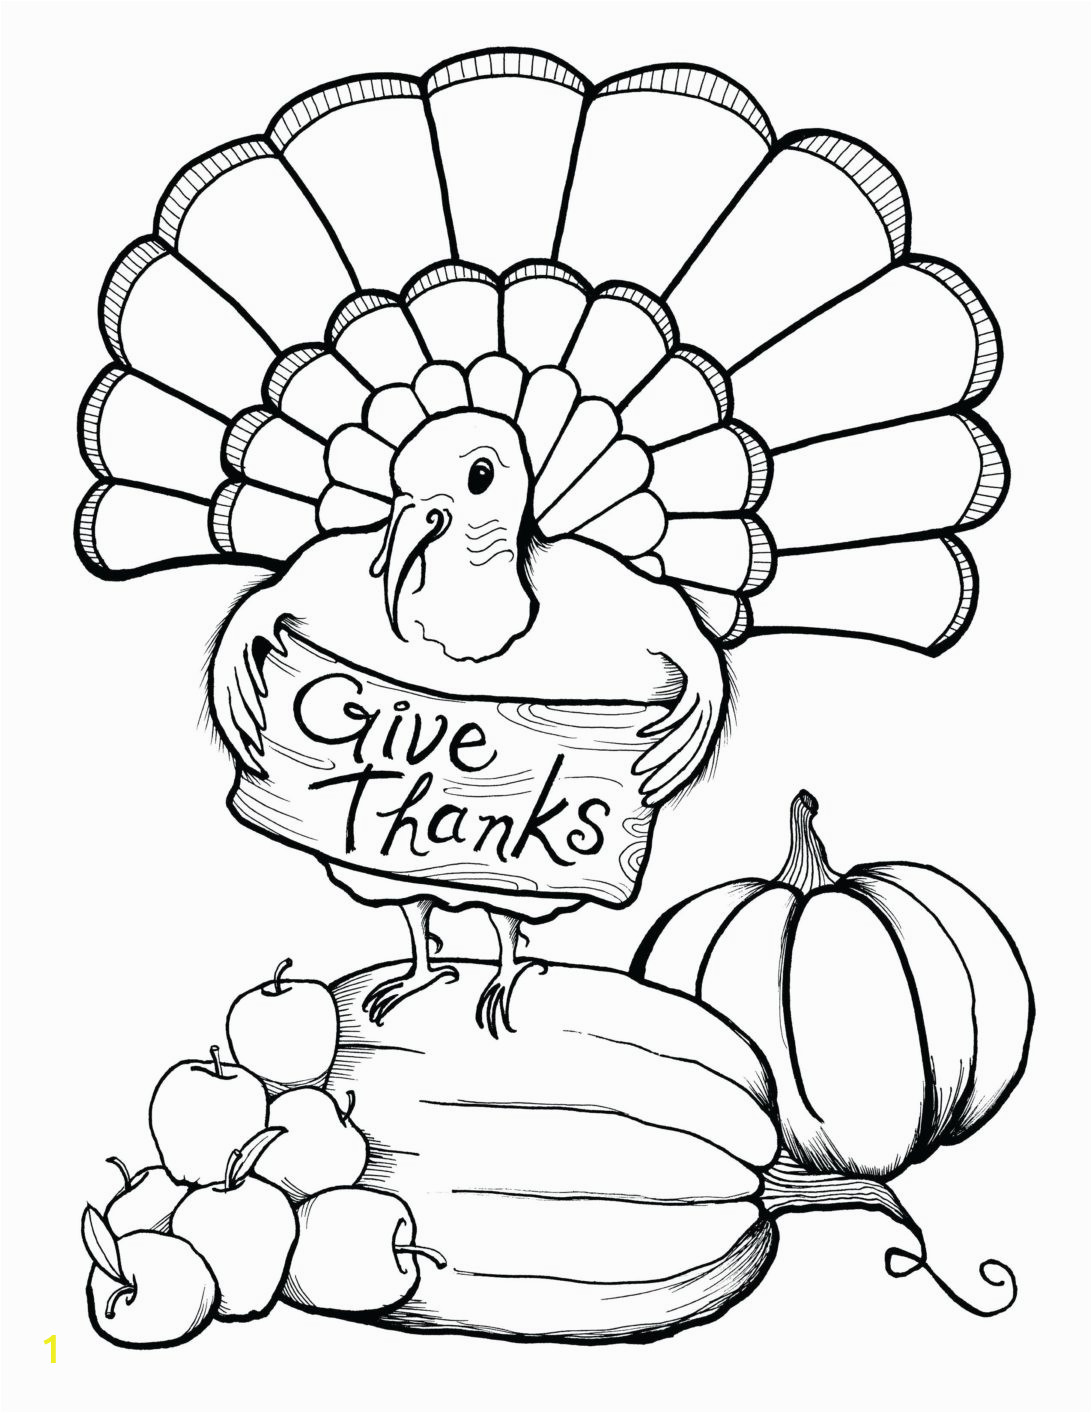 turkey remarkable free printable coloring pages thanksgiving page the inky for childrens fiestaprint co happy cornucopia give thanks crayola thankful adults best sheets 1092x1413